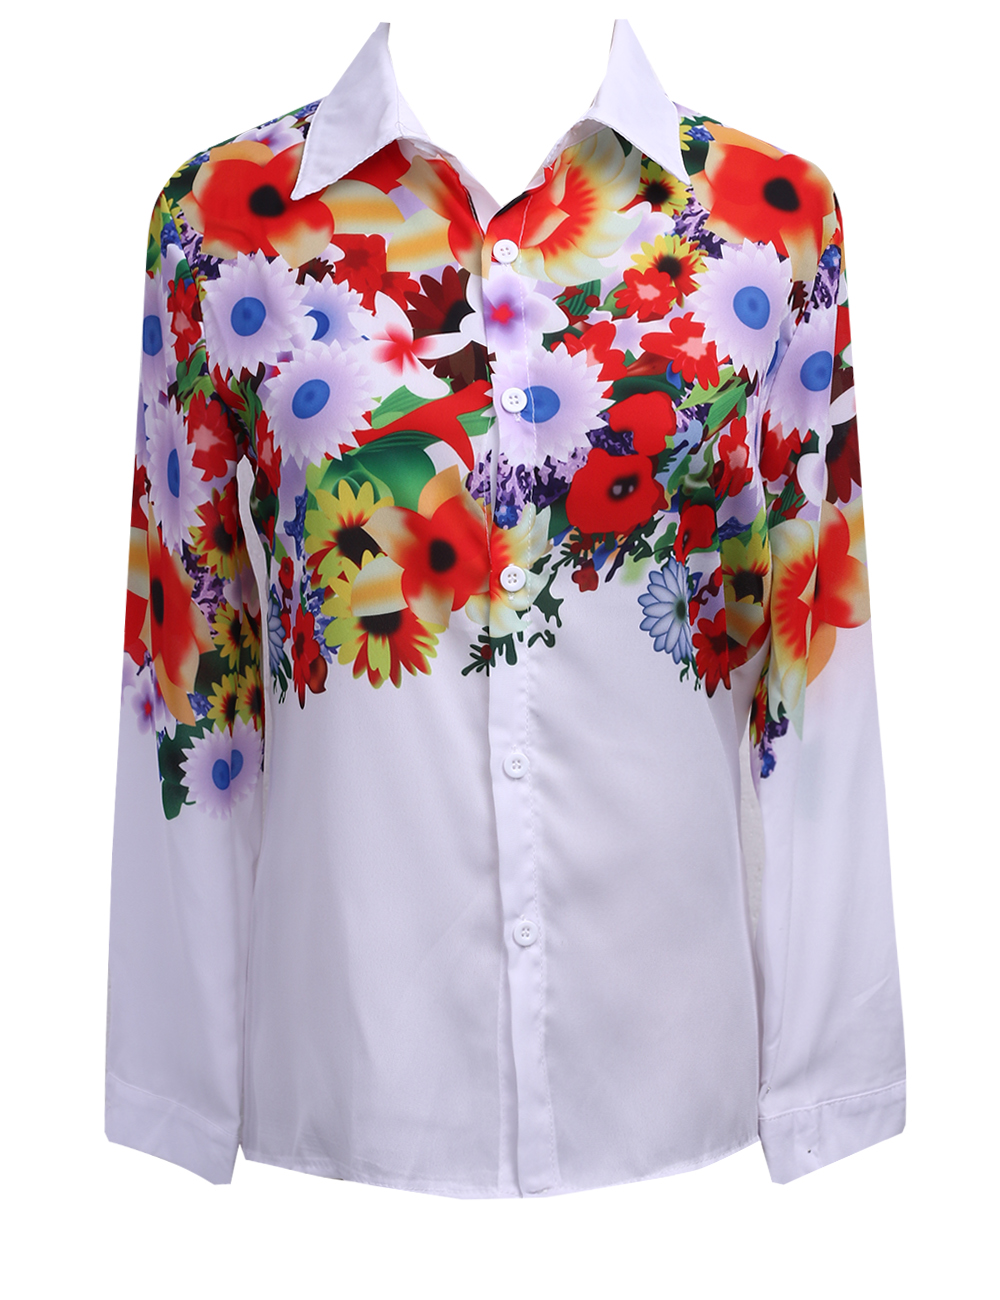 Women's Clothing Aliexpress Spring All-match Explosion White Printing Long Sleeved Blouse Wj166 Vestidos